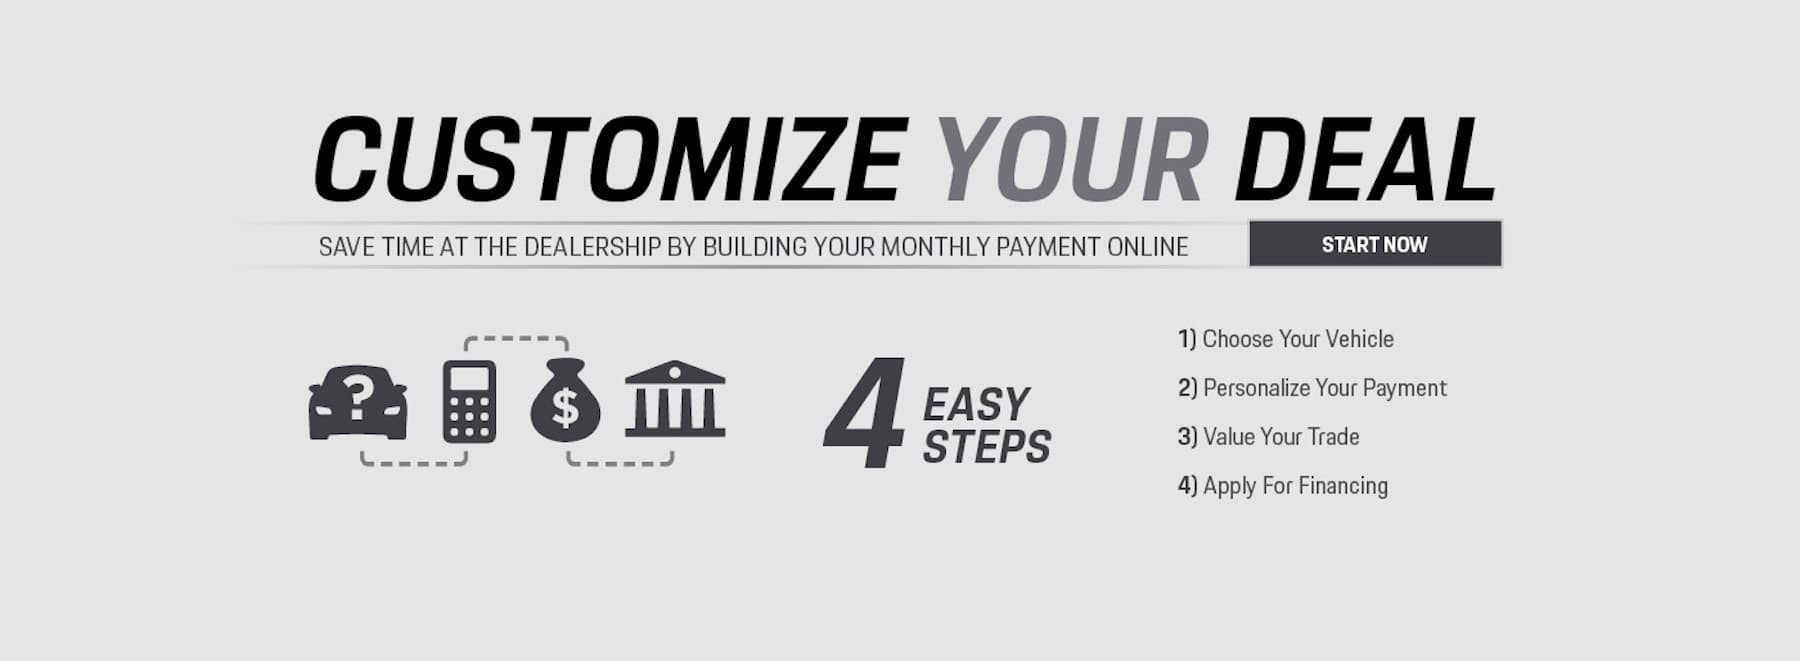 Calculator your Custom Payment with our Accelerator tool